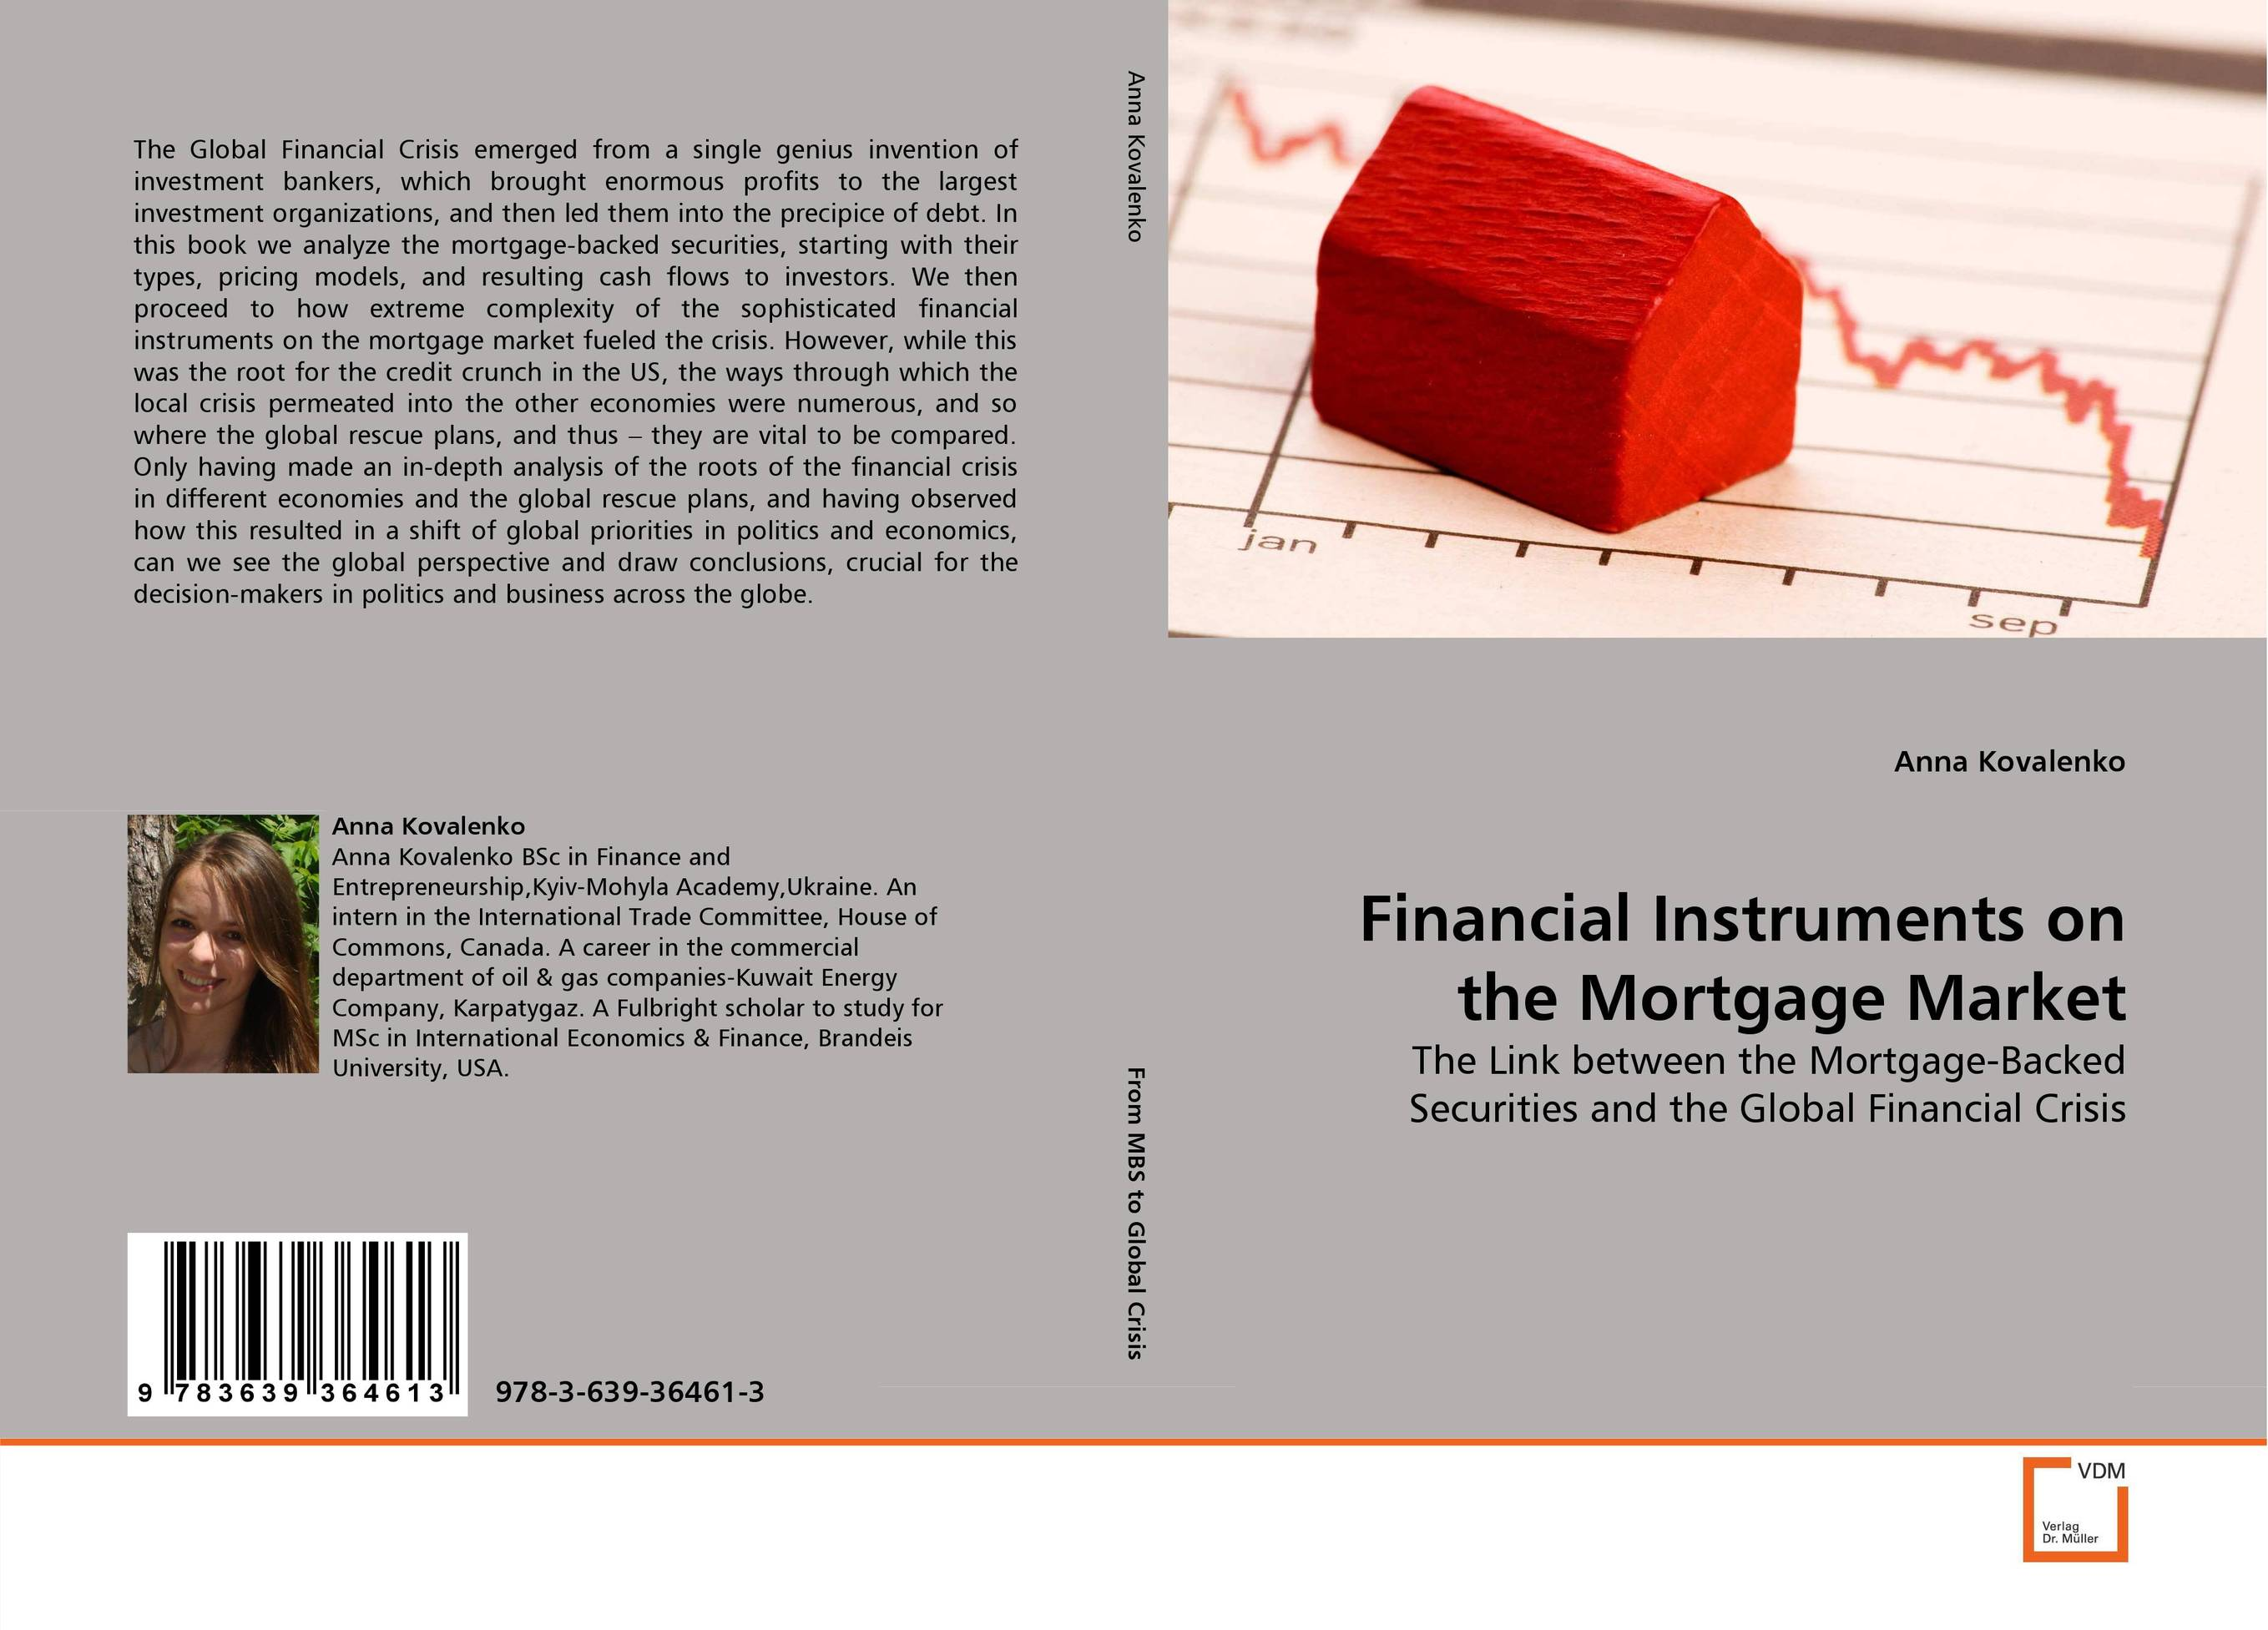 Financial Instruments on the Mortgage Market